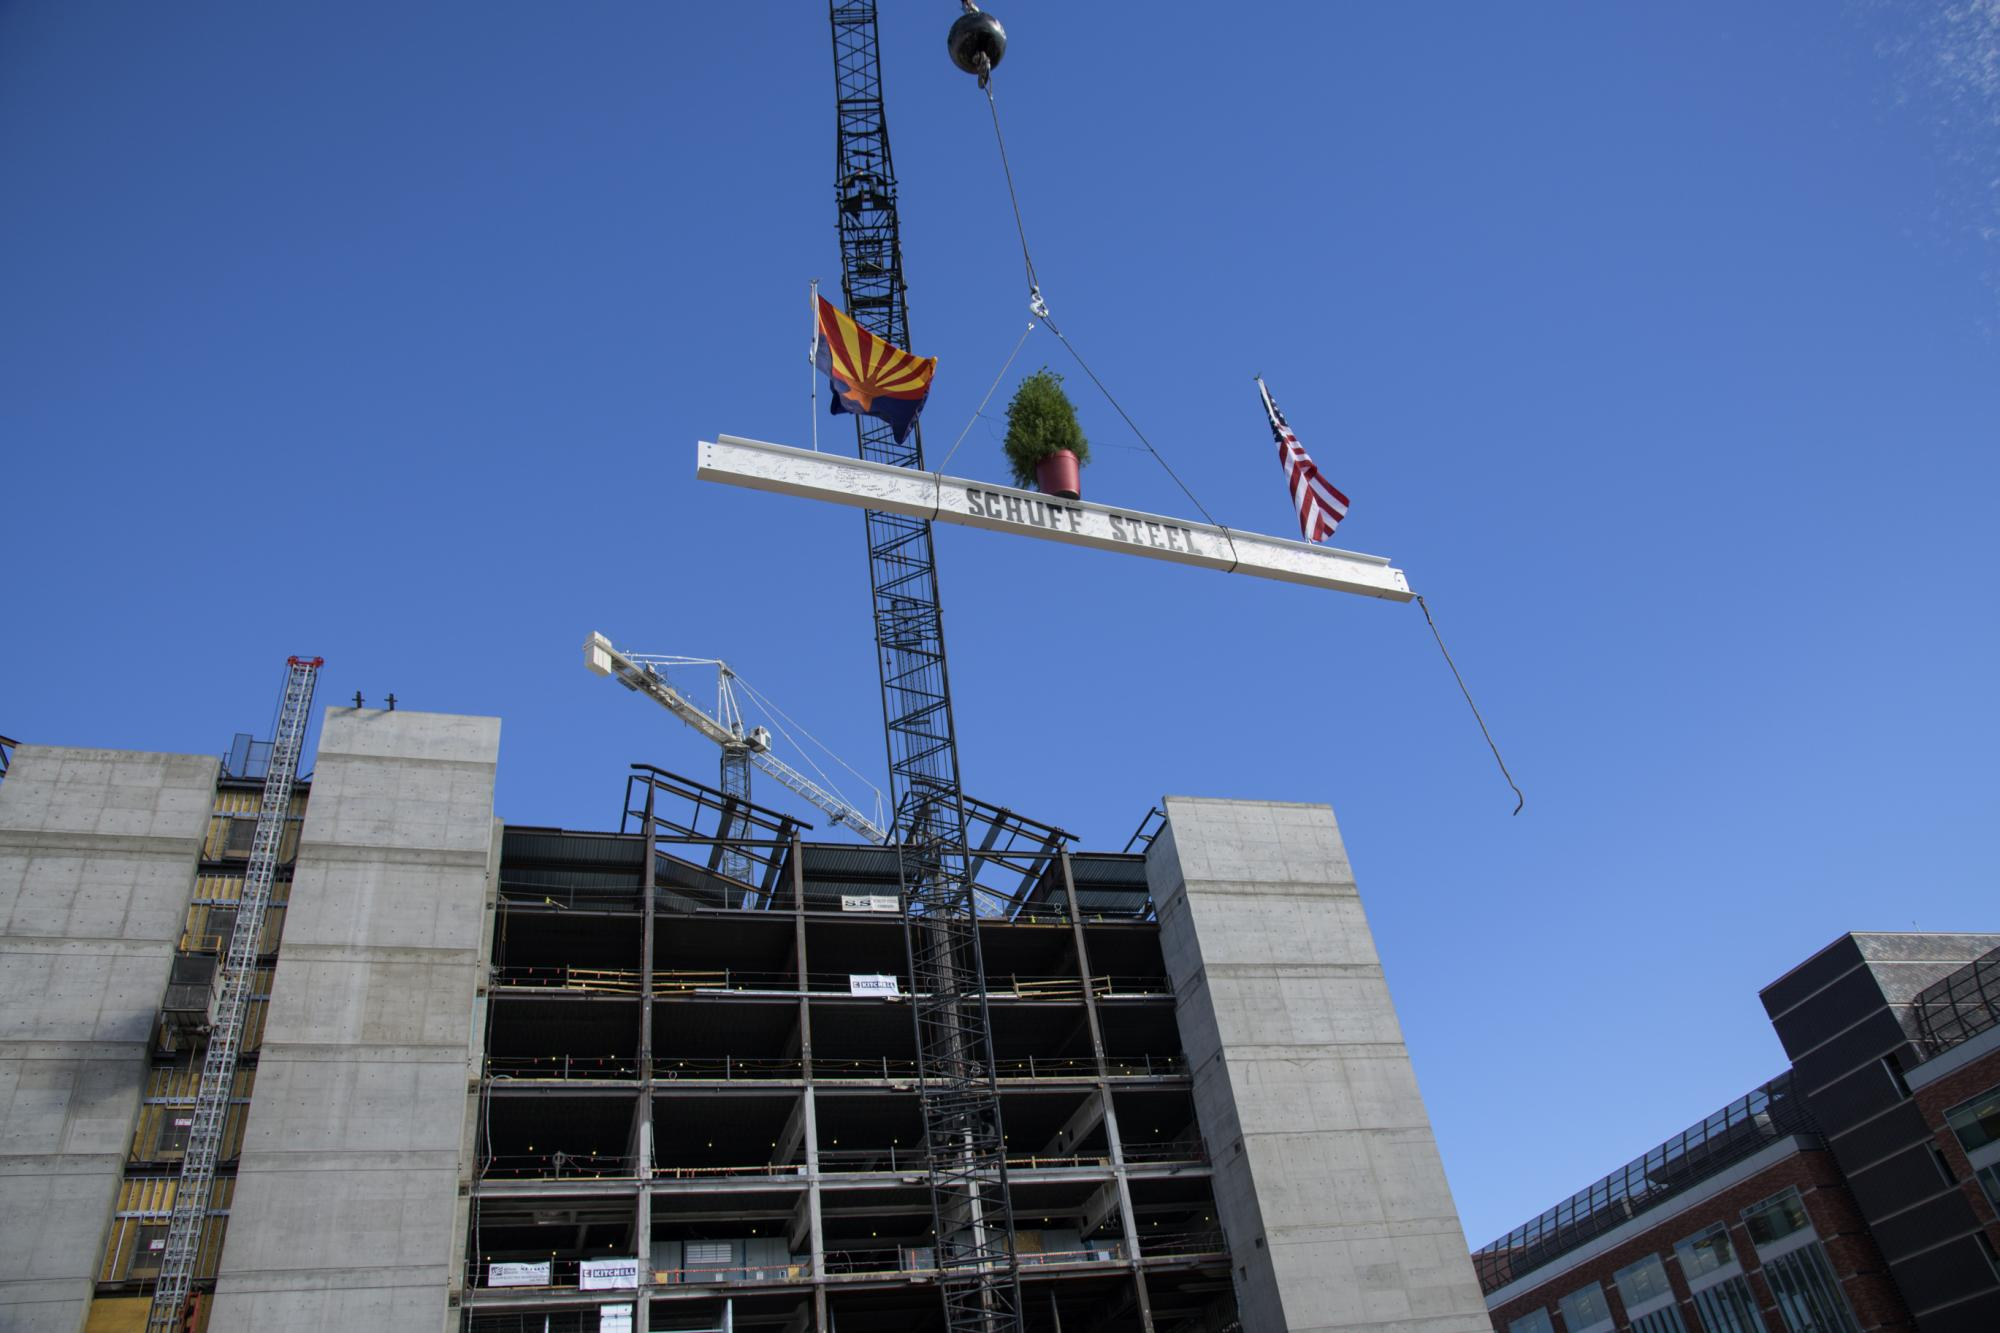 The final steel beam is lifted into place.